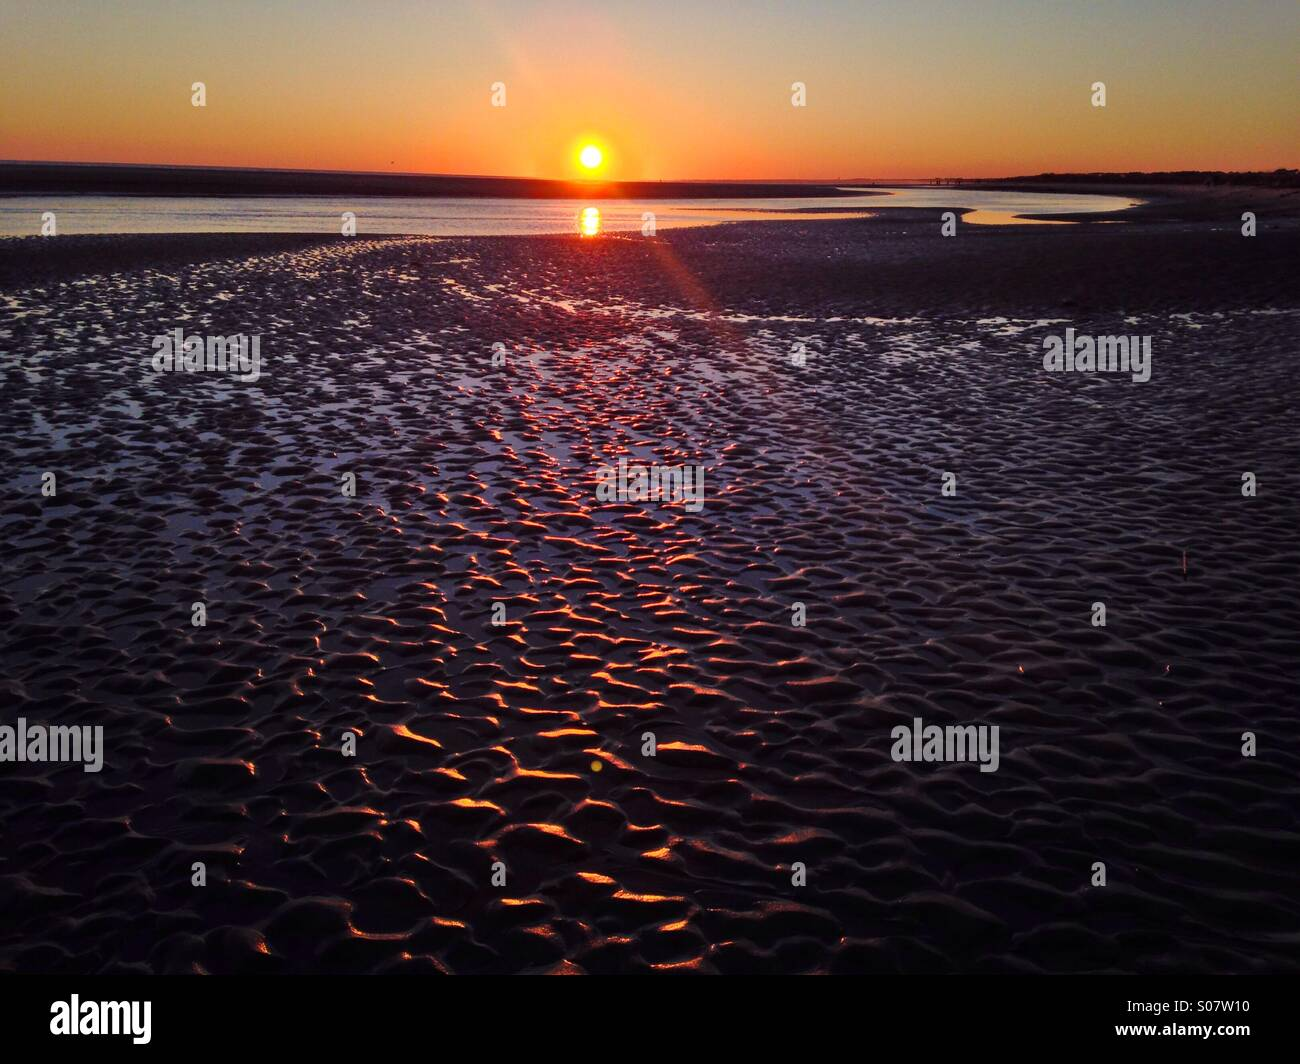 Sunset light shines on a sandbar at Kiawah Island, SC. - Stock Image